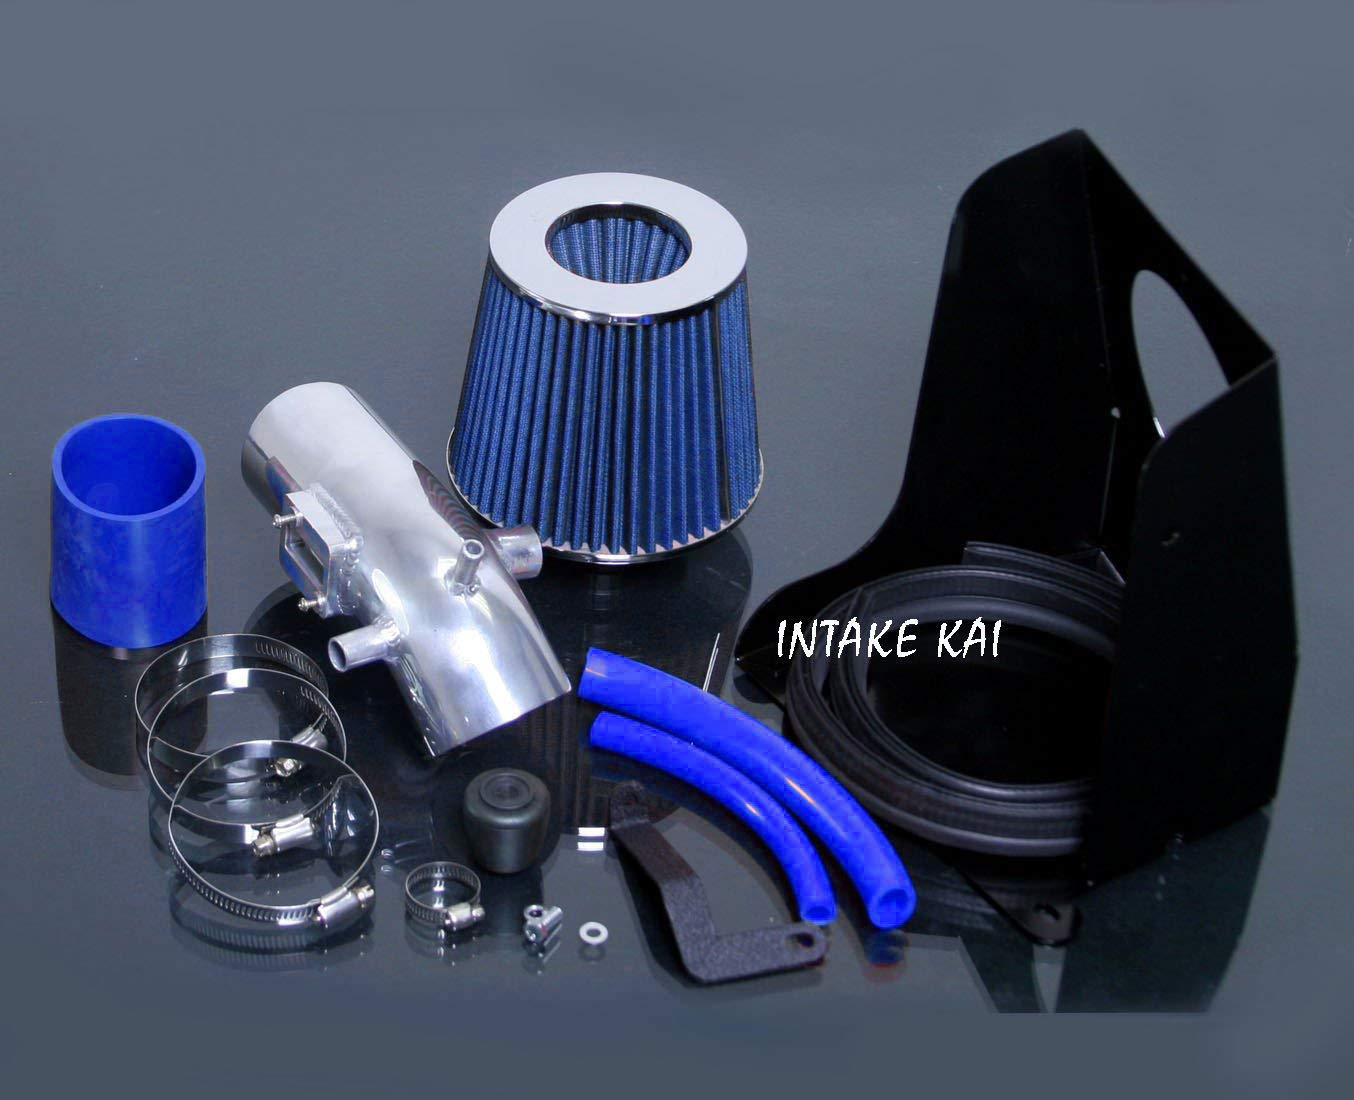 Performance HEATSHIELD Cold AIR Intake KIT Filter for 2006-2012 Ford Fusion 2.3 2.3L 2.5 2.5L L4 Engine